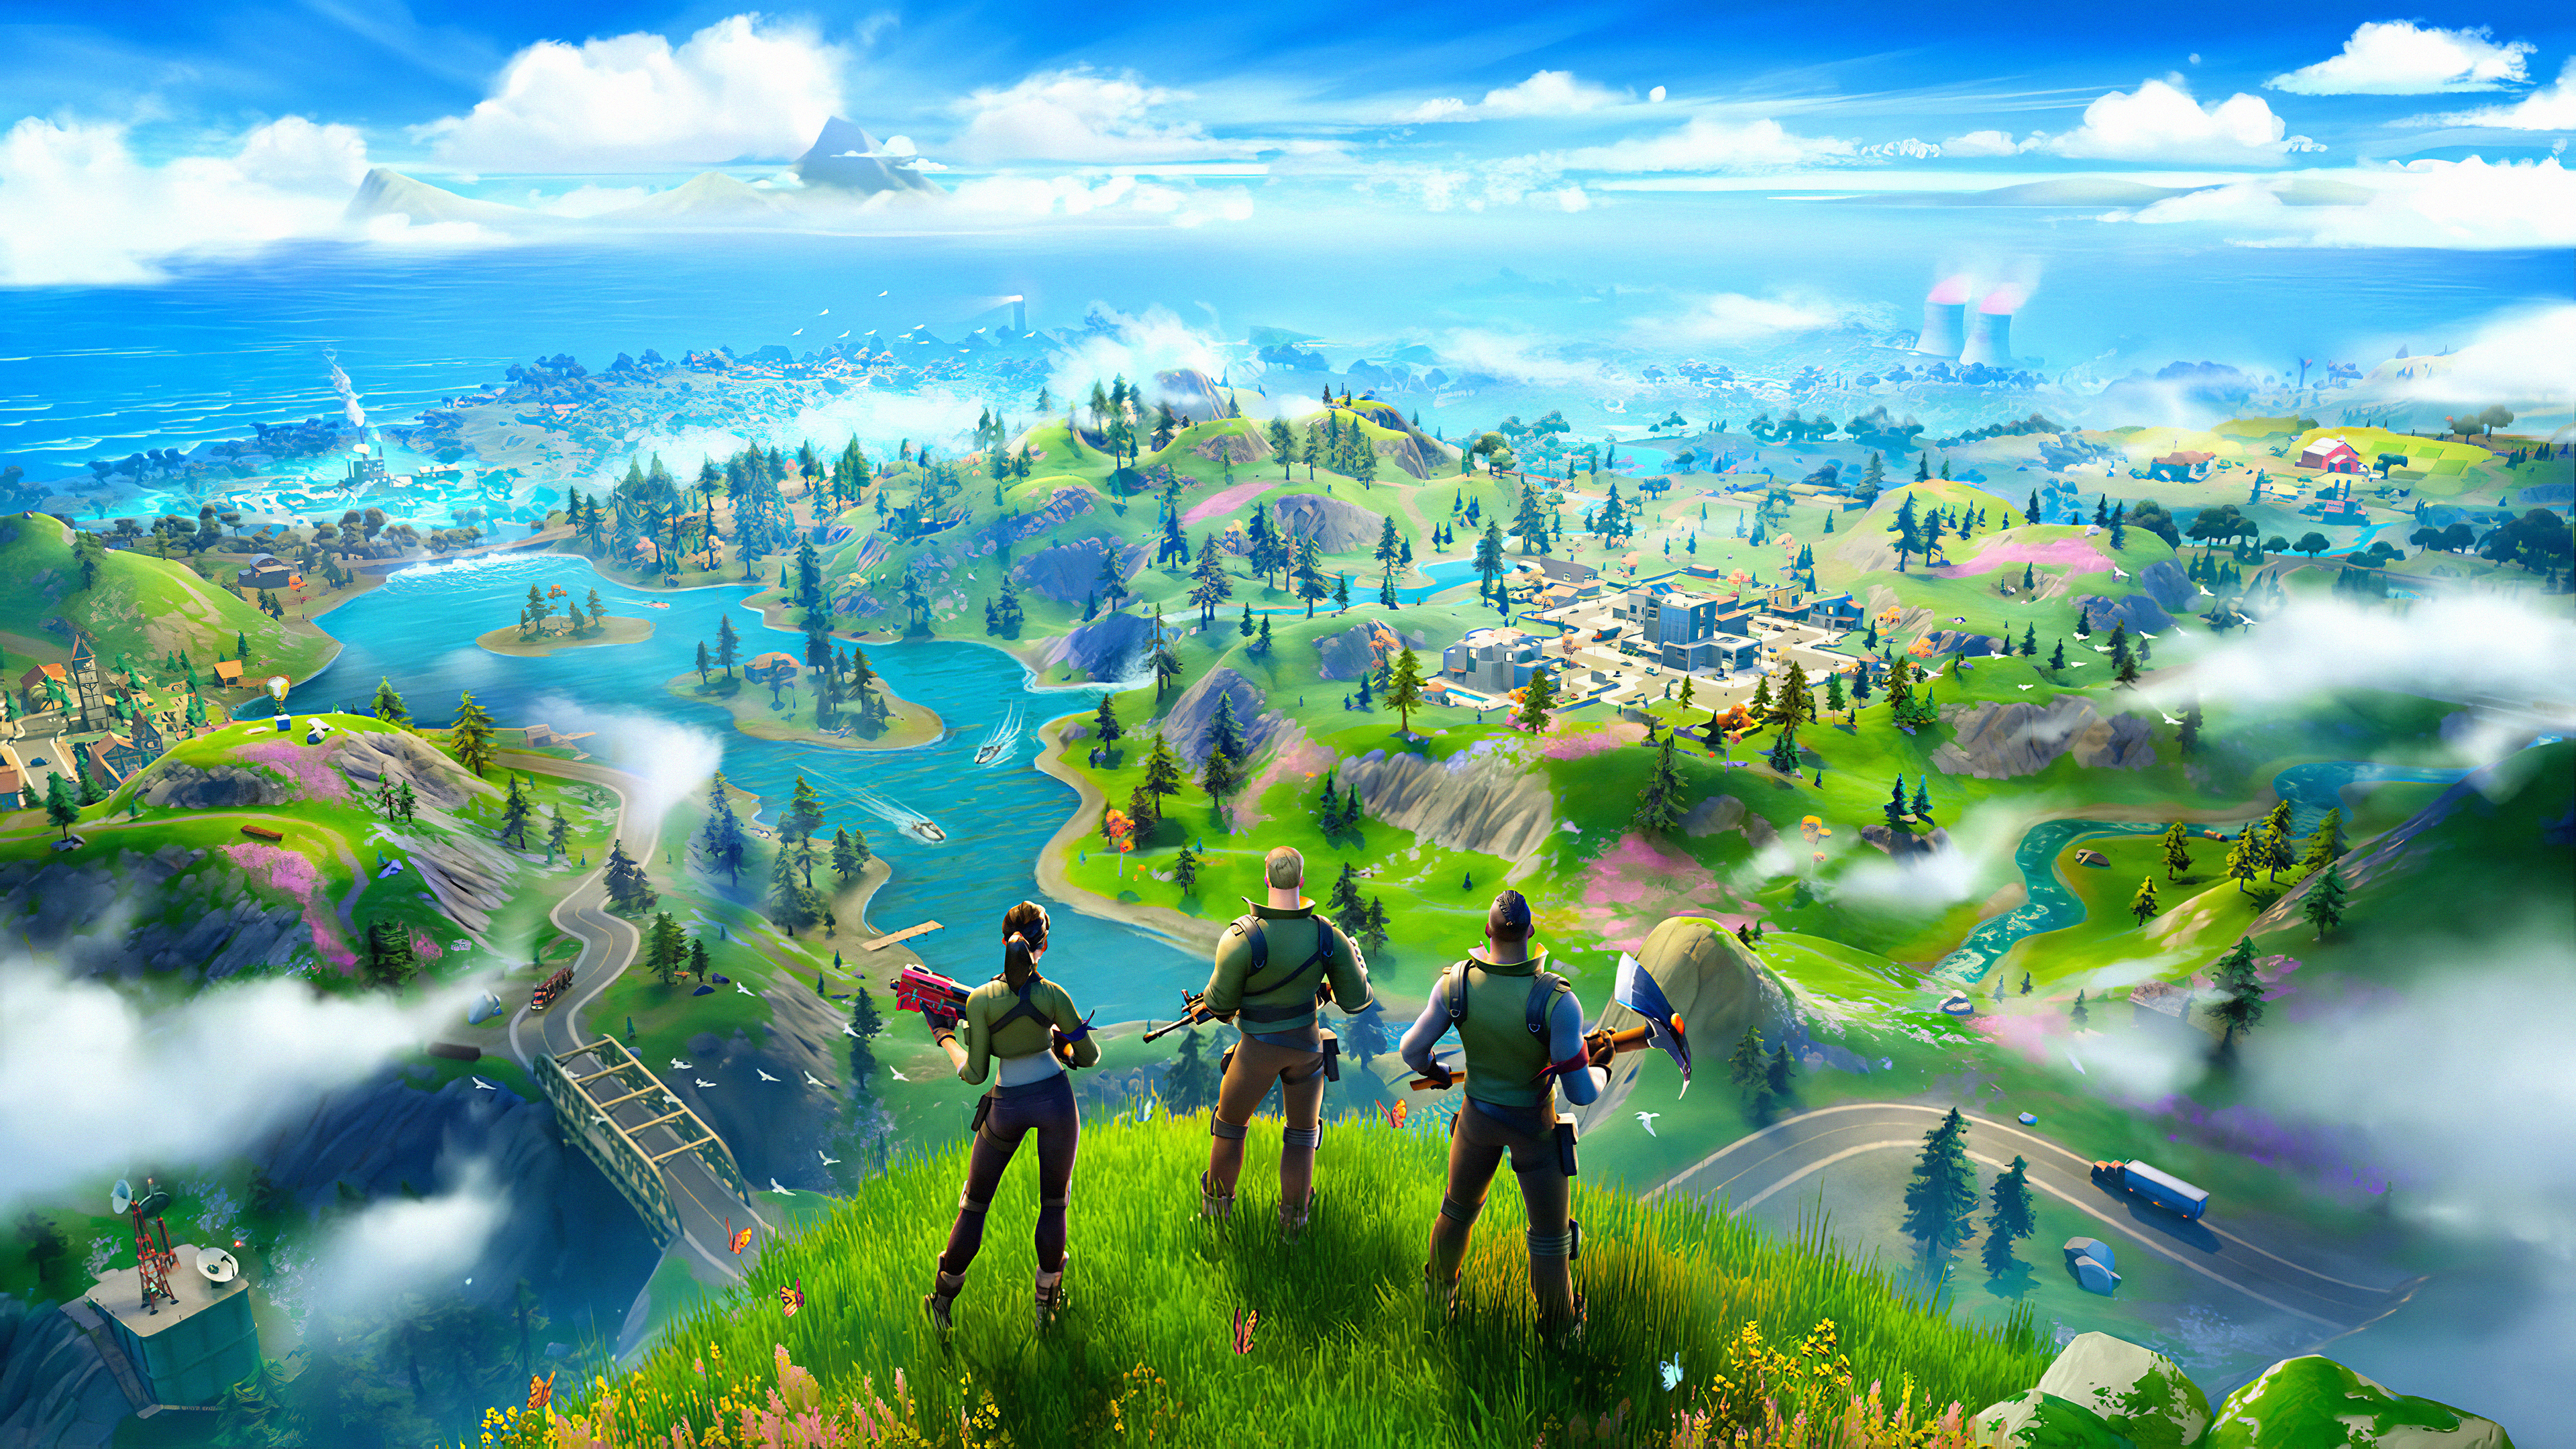 Fortnite Chapter 2 2019 Hd Games 4k Wallpapers Images Backgrounds Photos And Pictures